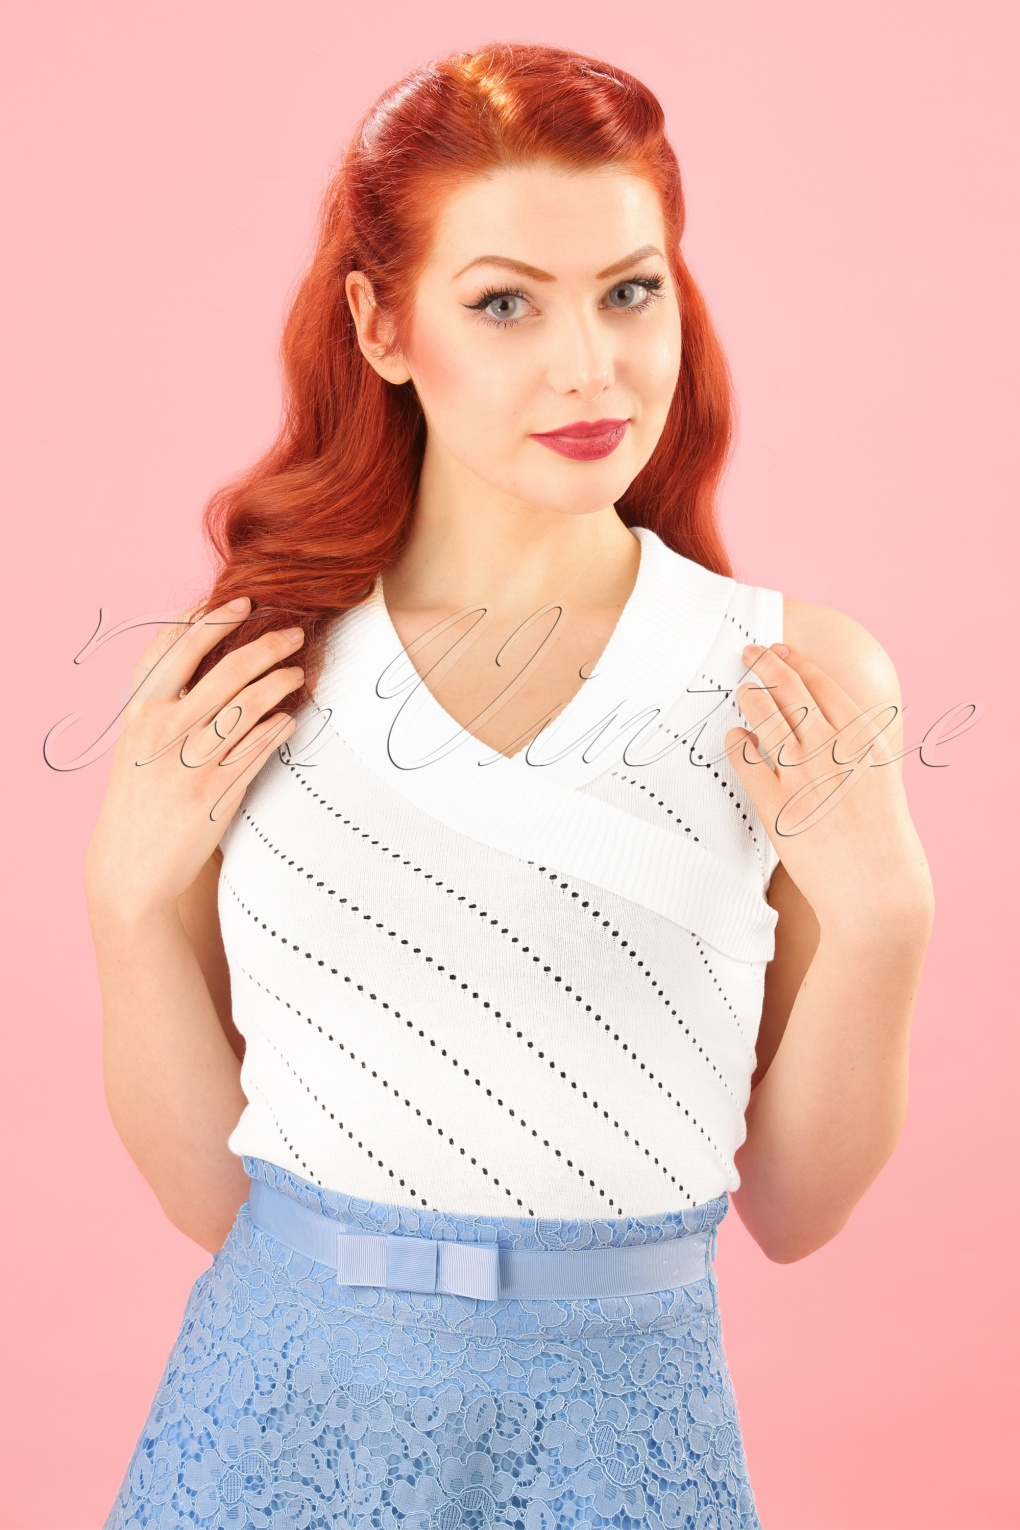 Vintage & Retro Shirts, Halter Tops, Blouses 50s Its A Wrap Knit Top in Off White £33.38 AT vintagedancer.com